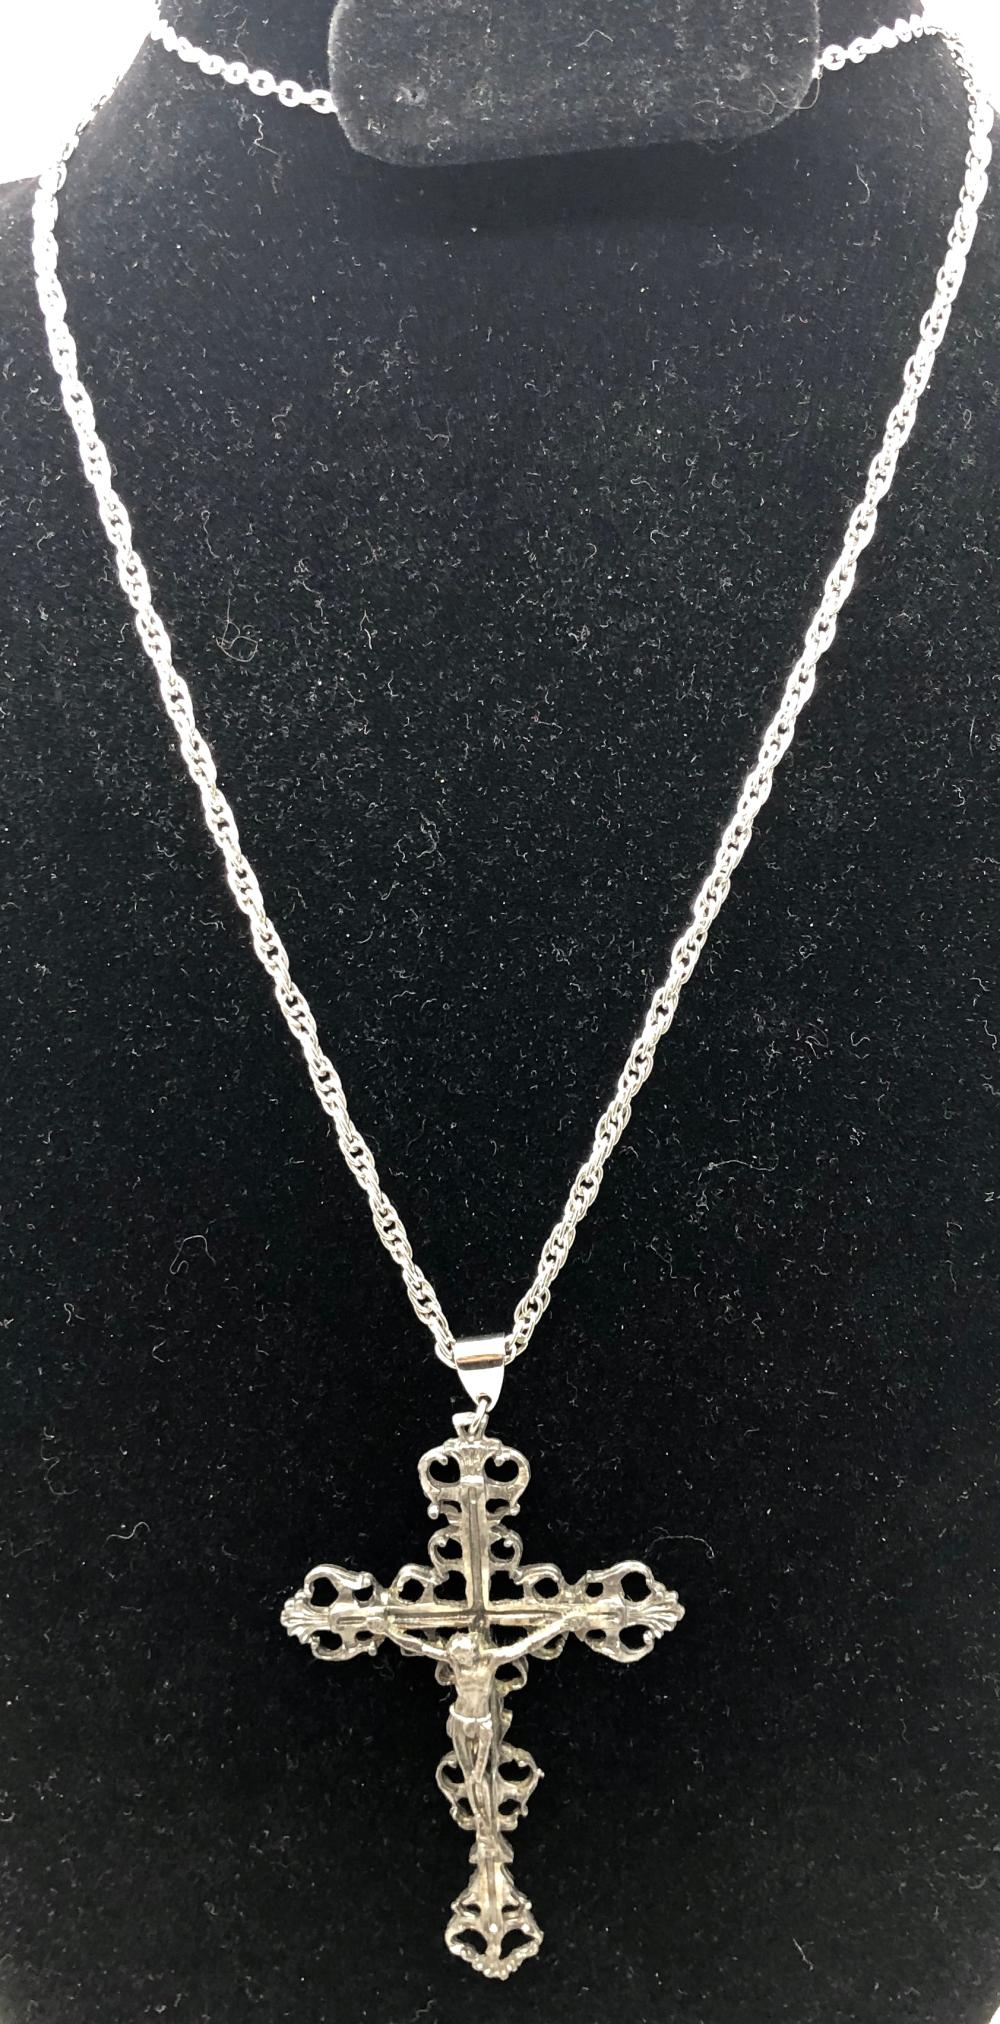 Silver Tone Crucifix on Silver Tone Chain